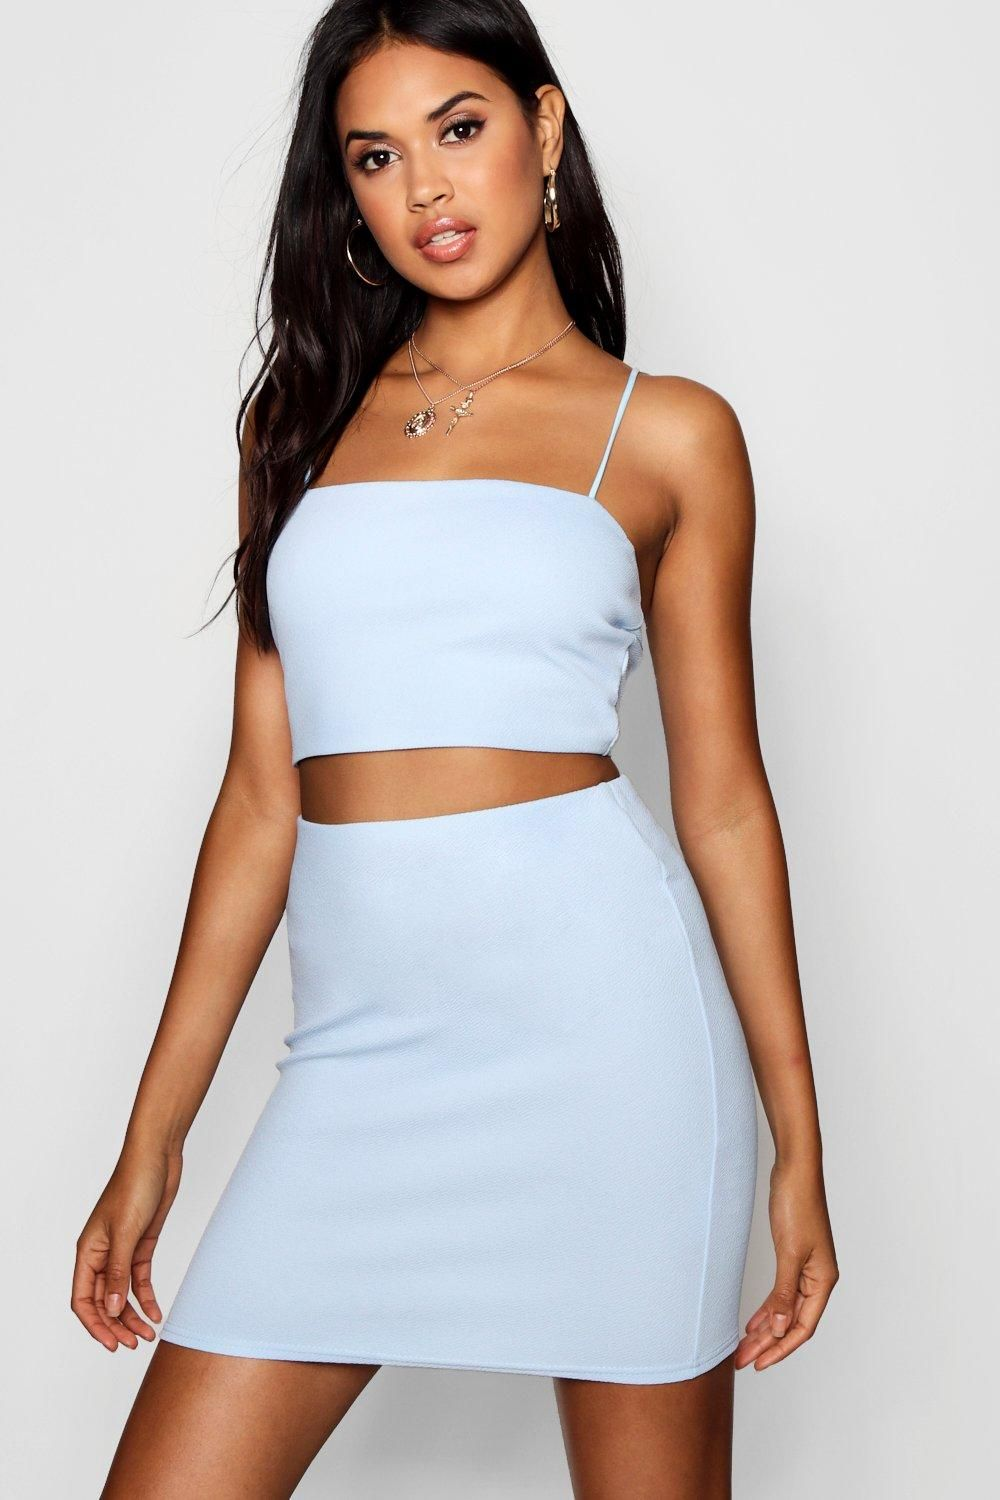 Womens Strappy Crop Mini Skirt Two Piece Set Blue 8 In 2021 Mini Skirts Designer Dresses Casual Skirt Co Ord [ 1500 x 1000 Pixel ]